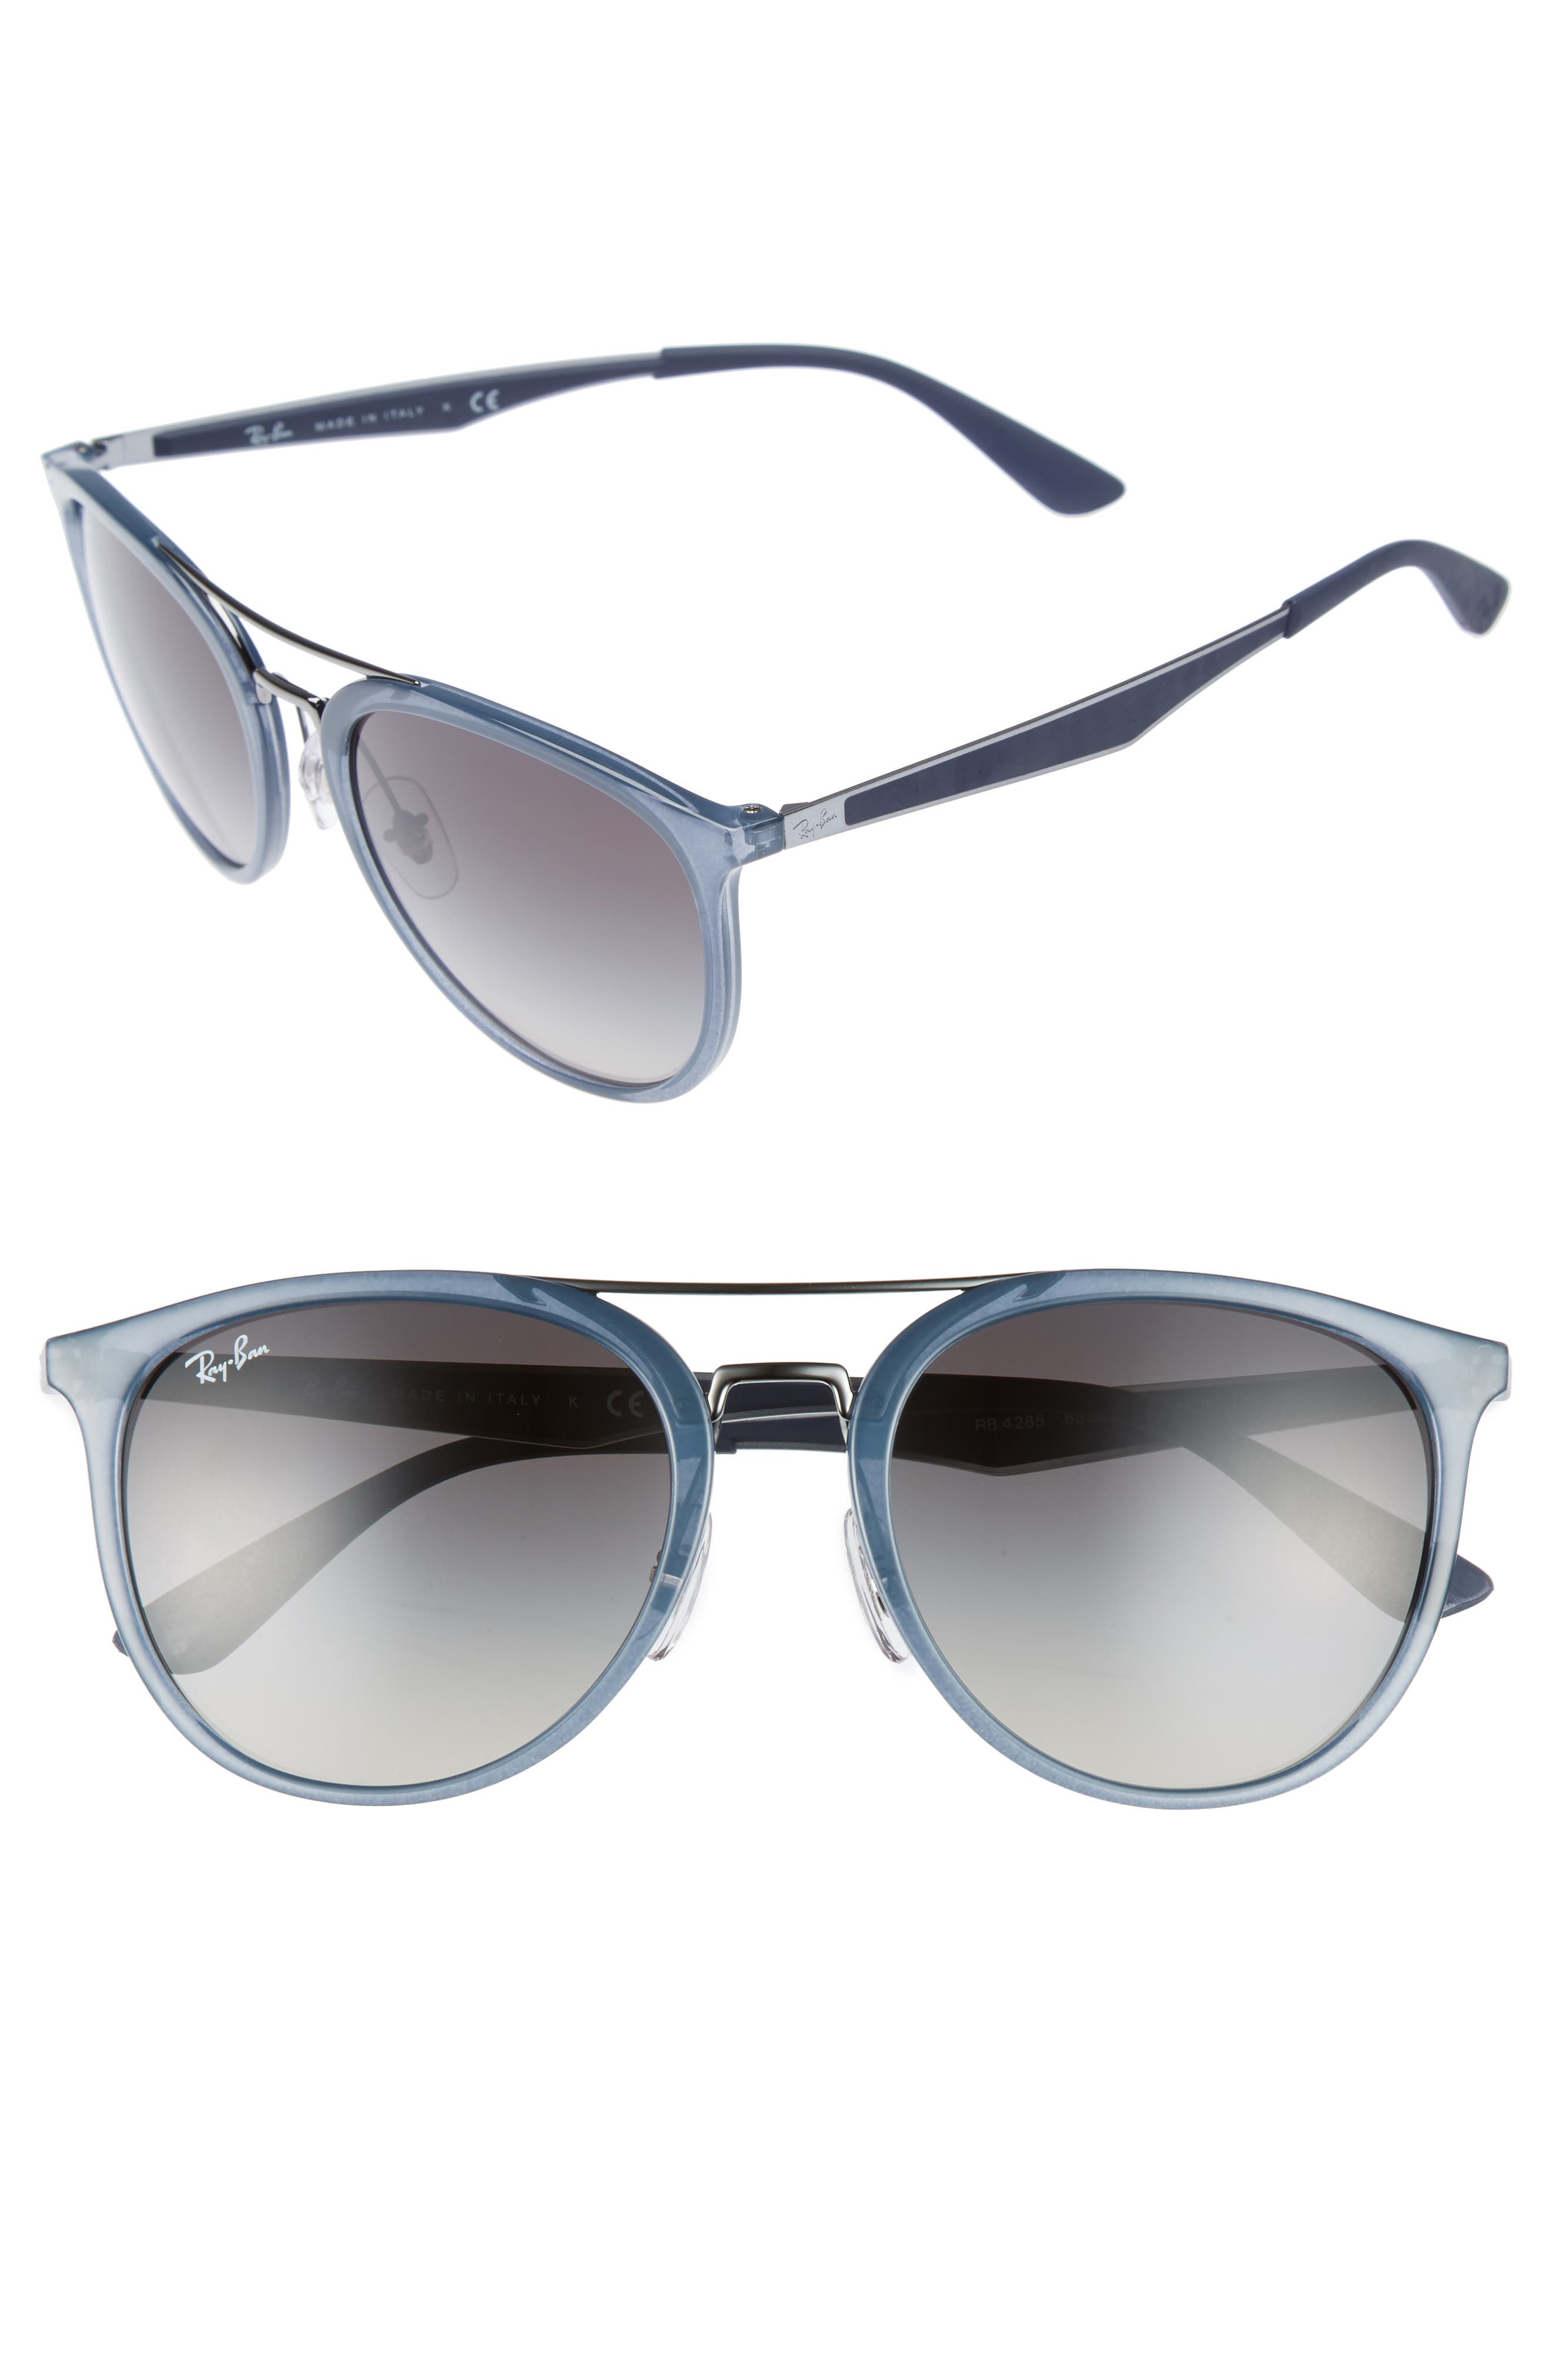 55mm Gradient Lens Sunglasses,                         Main,                         color, Crystal